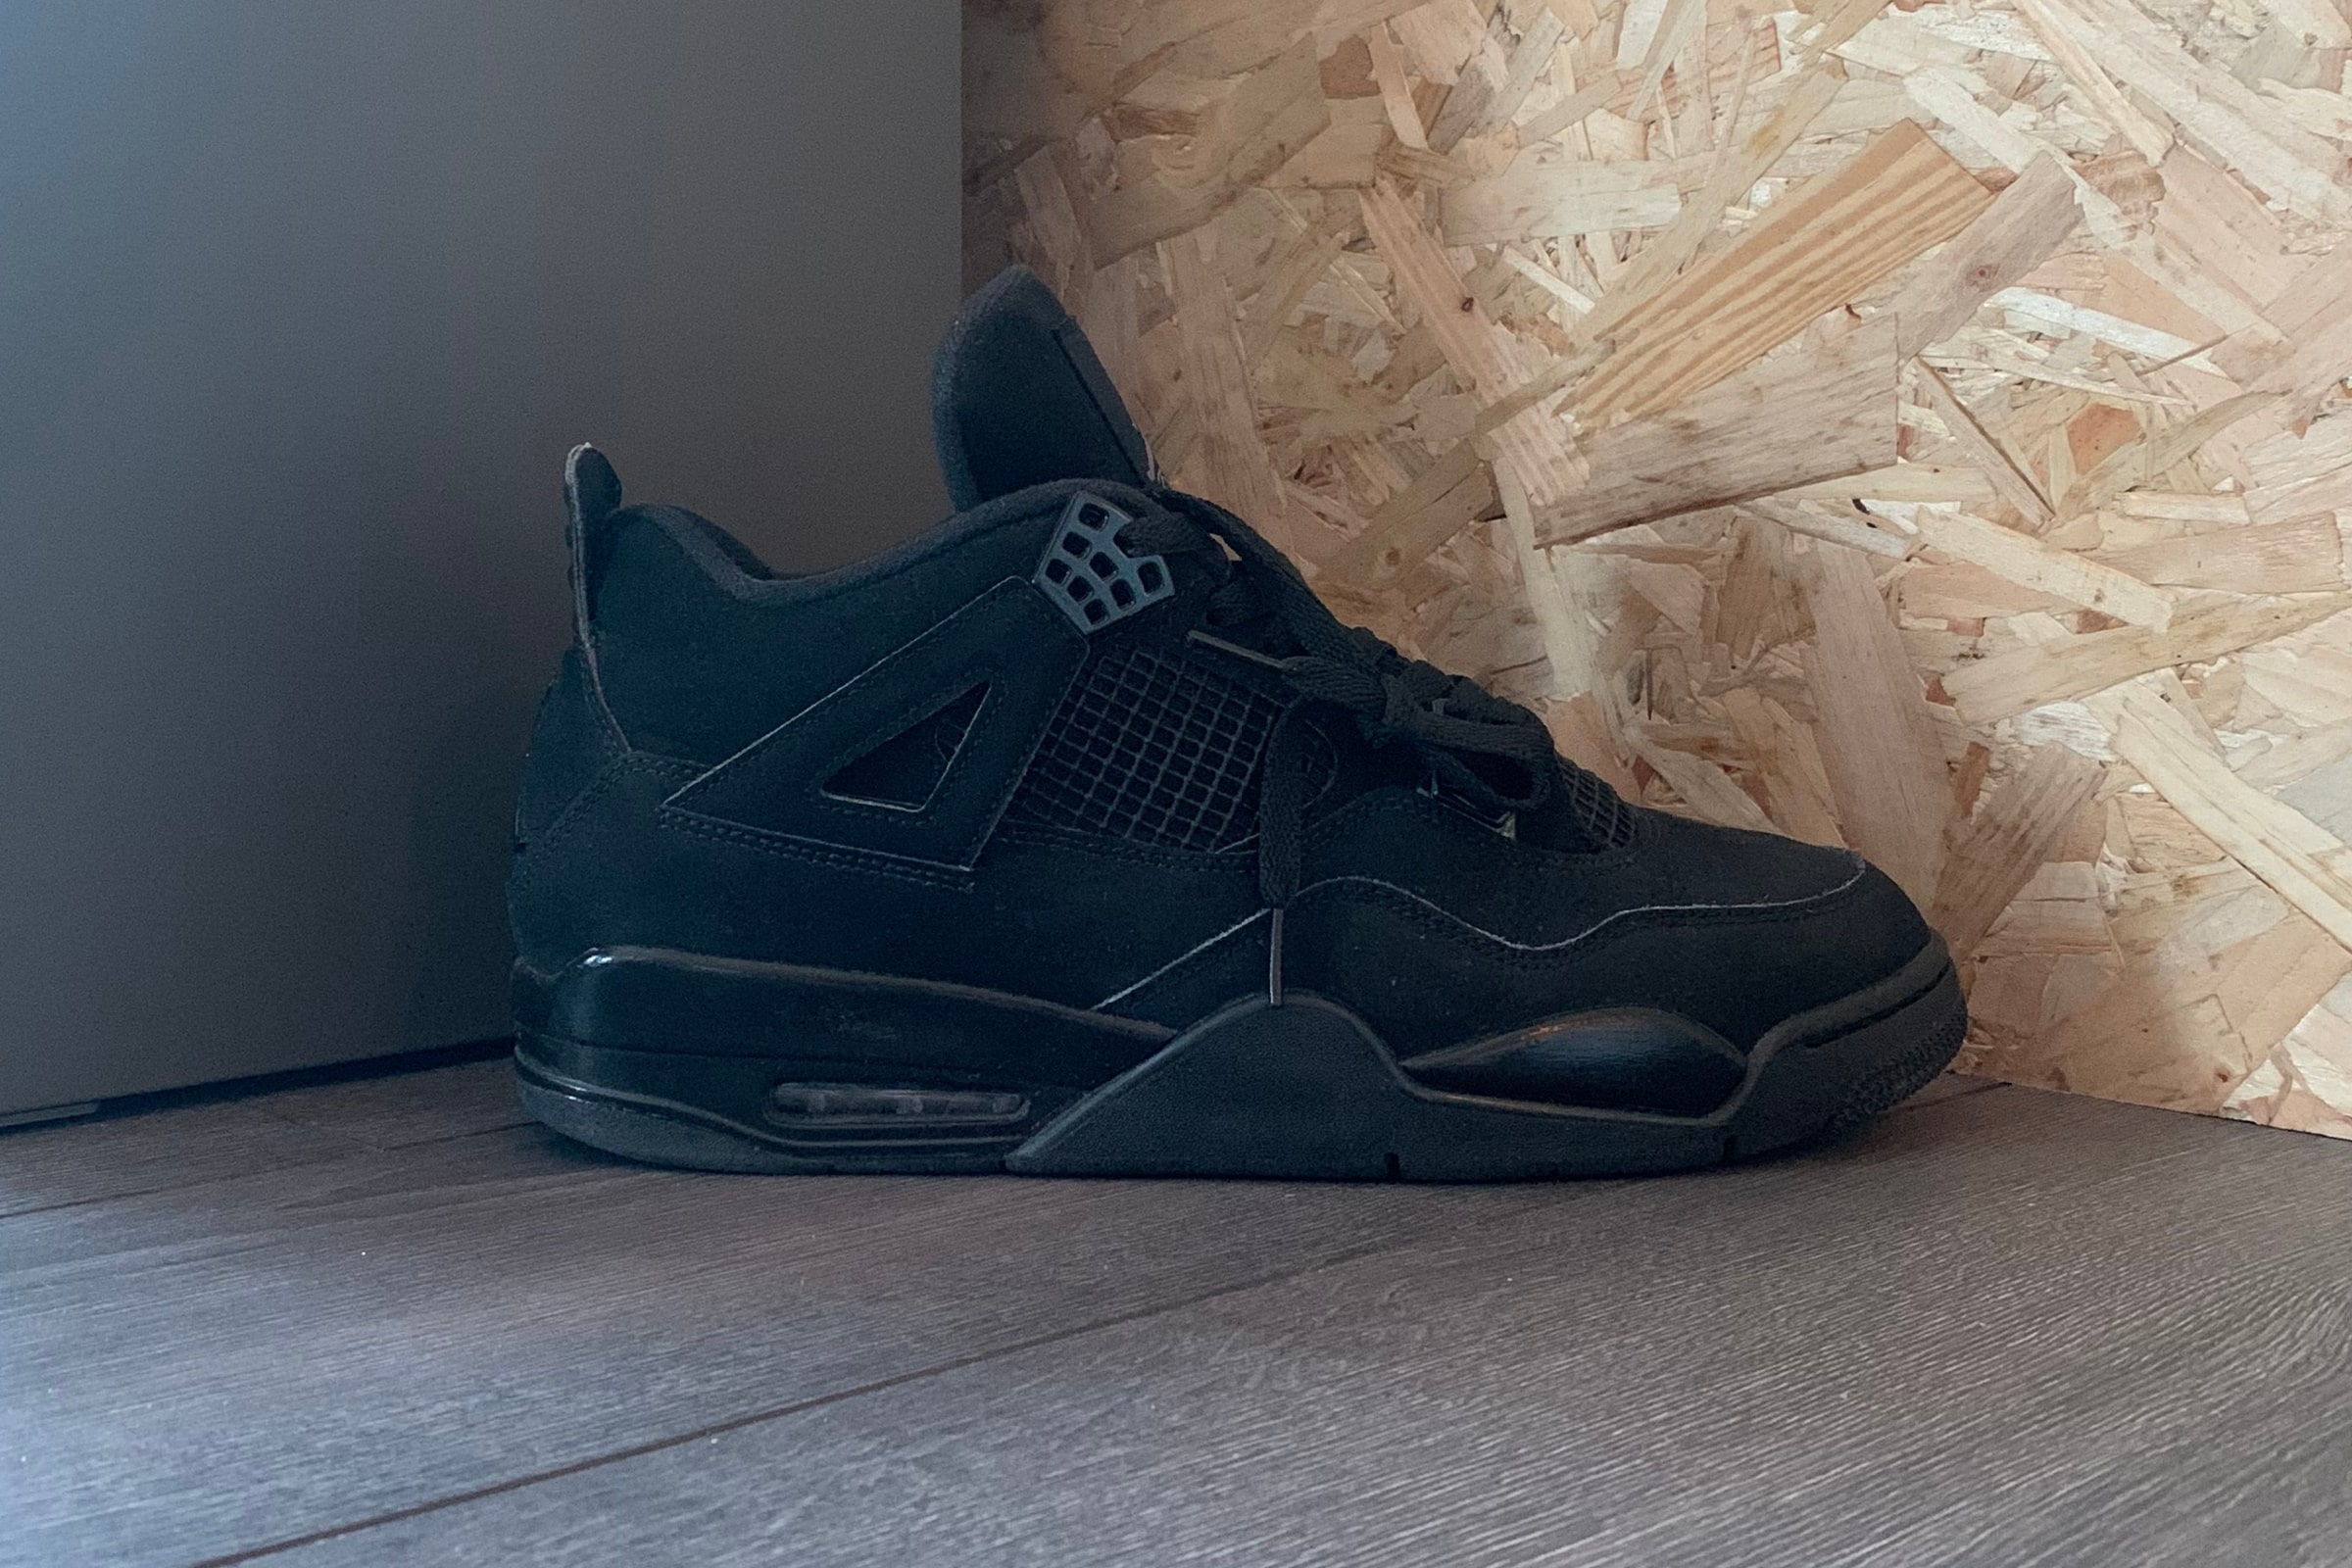 Nike Air Jordan 4 'Black Cat' - 2020